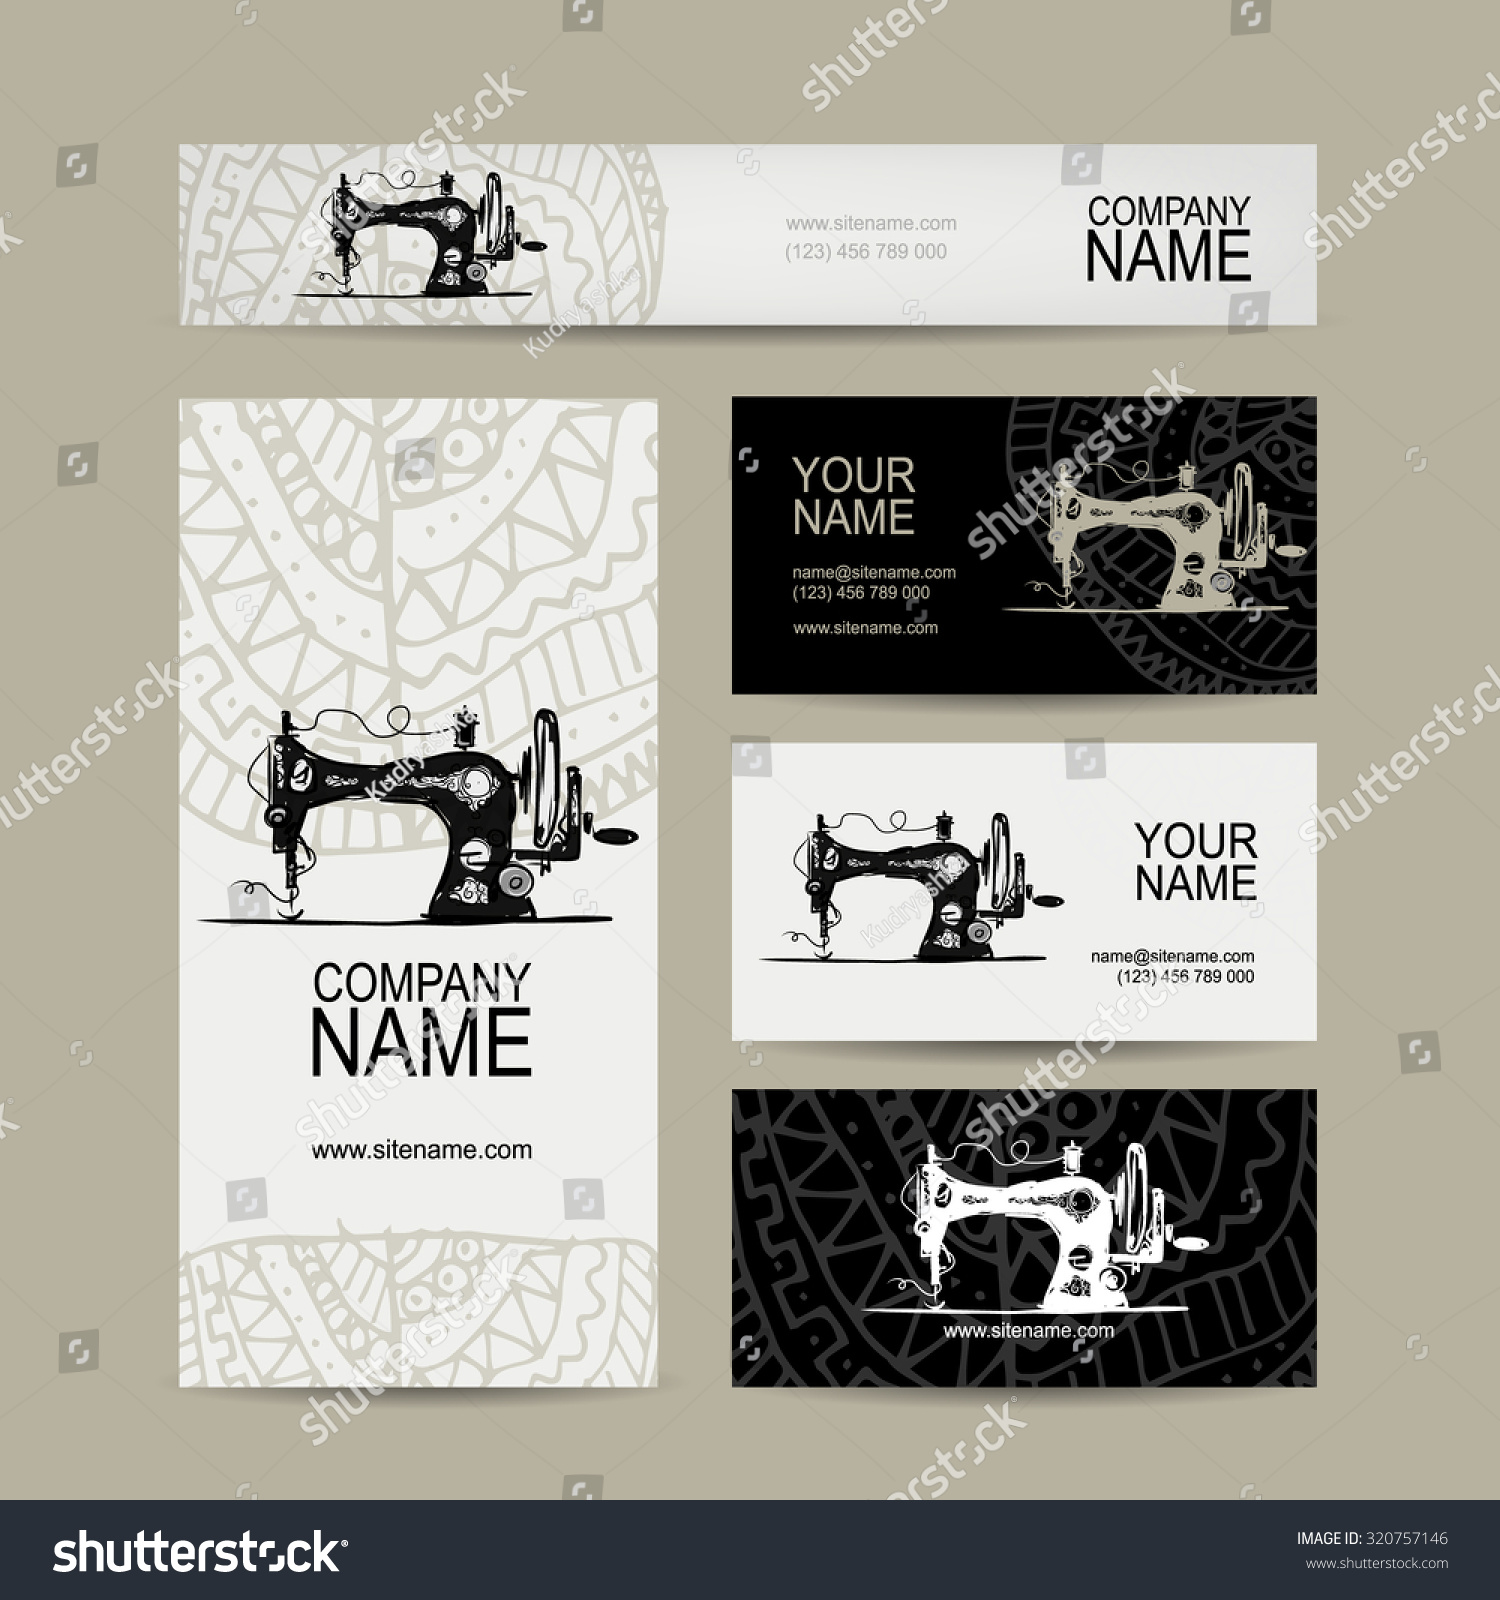 Business Cards Design Sewing Maschine Sketch Stock Vector HD ...